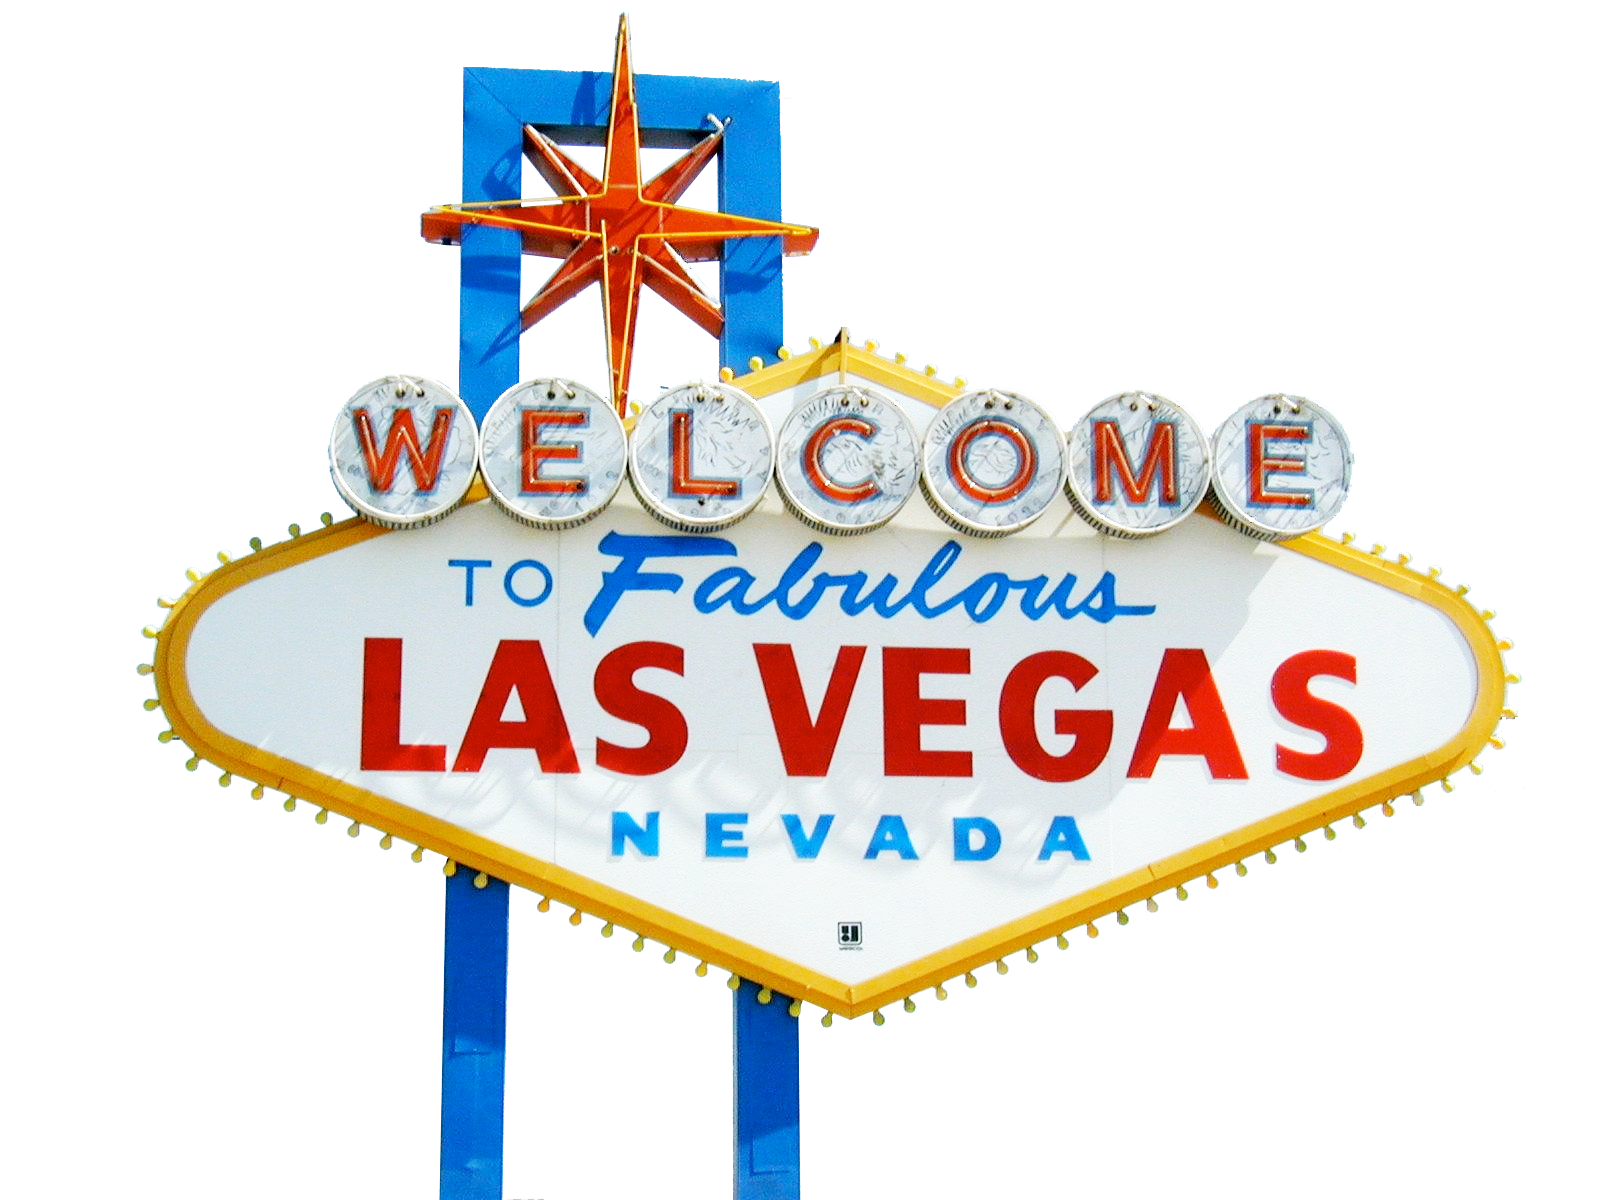 Vegas star clipart picture transparent library Las Vegas PNG Transparent Las Vegas.PNG Images. | PlusPNG picture transparent library